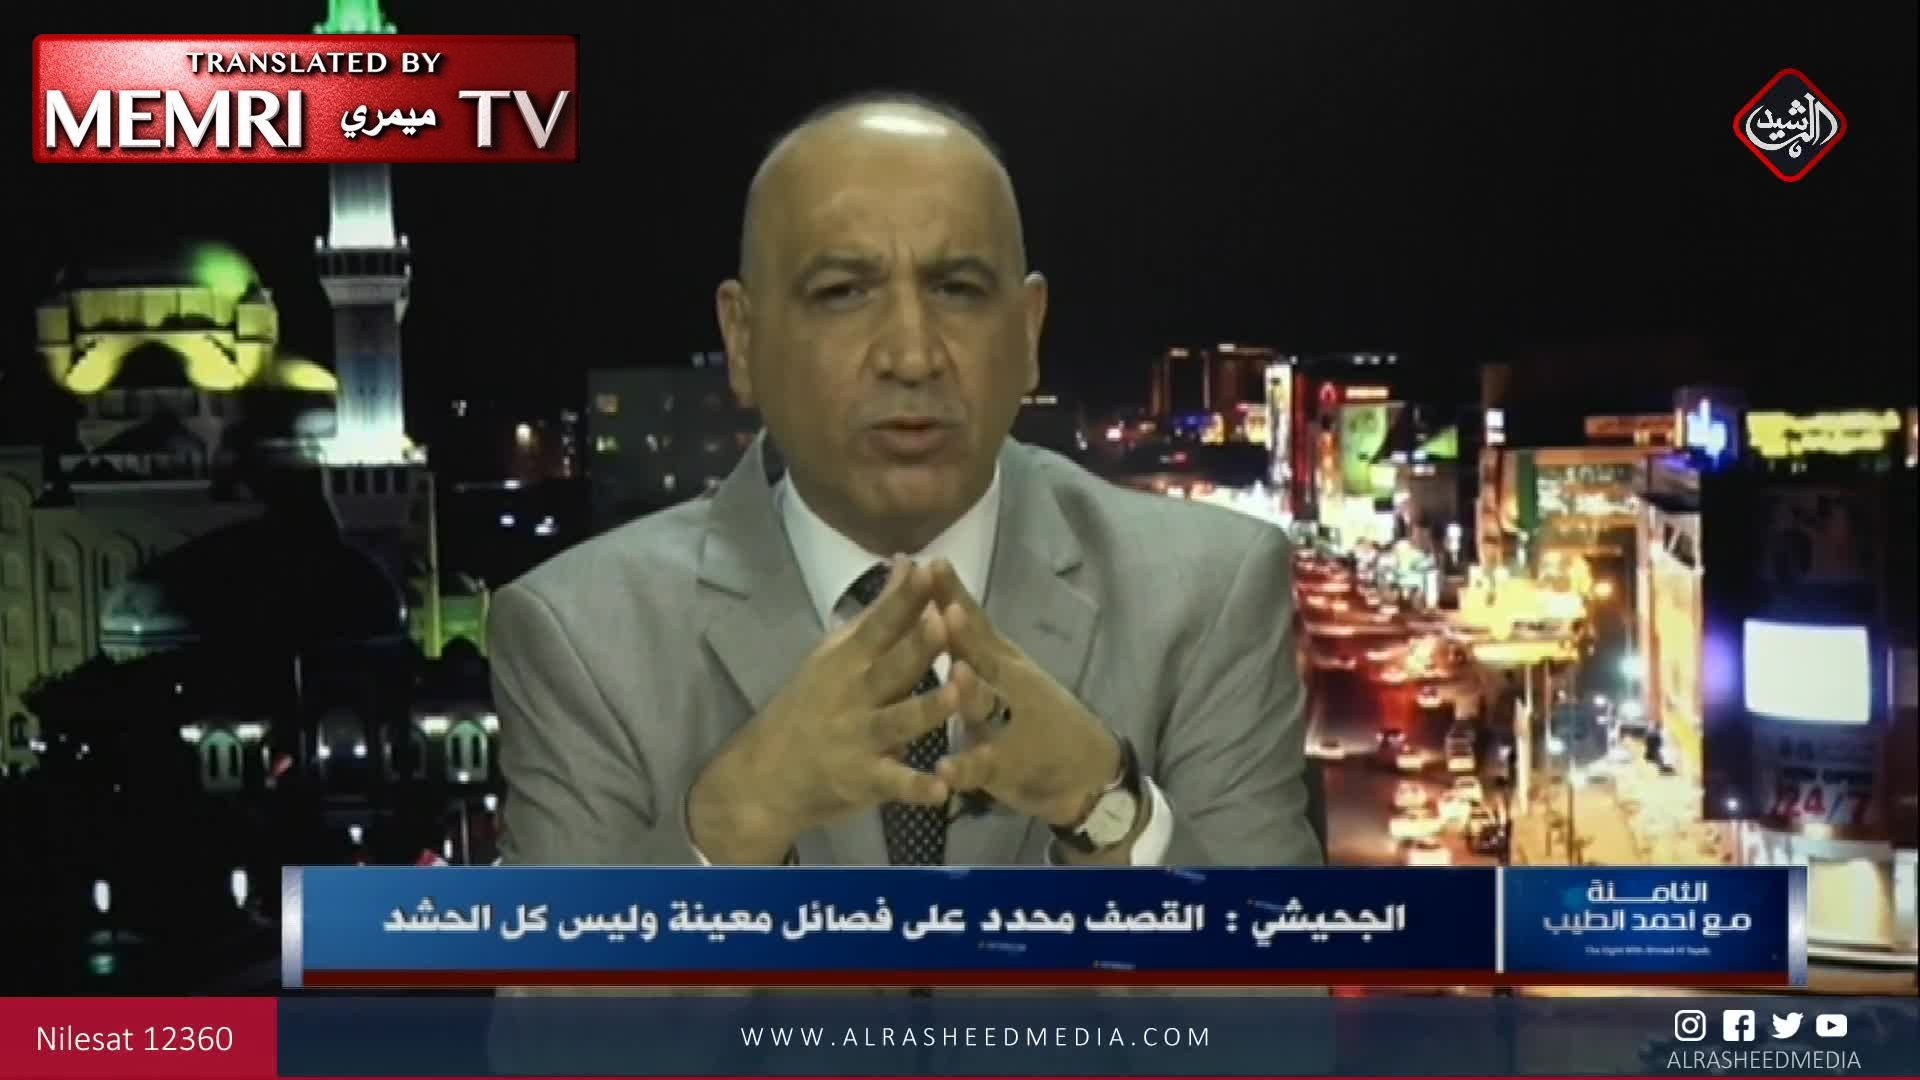 Iraqi Researcher Muayad Algehiche: We Should Recognize That Iraq Does Not Have the Military Capability to Pose a Threat to Israel